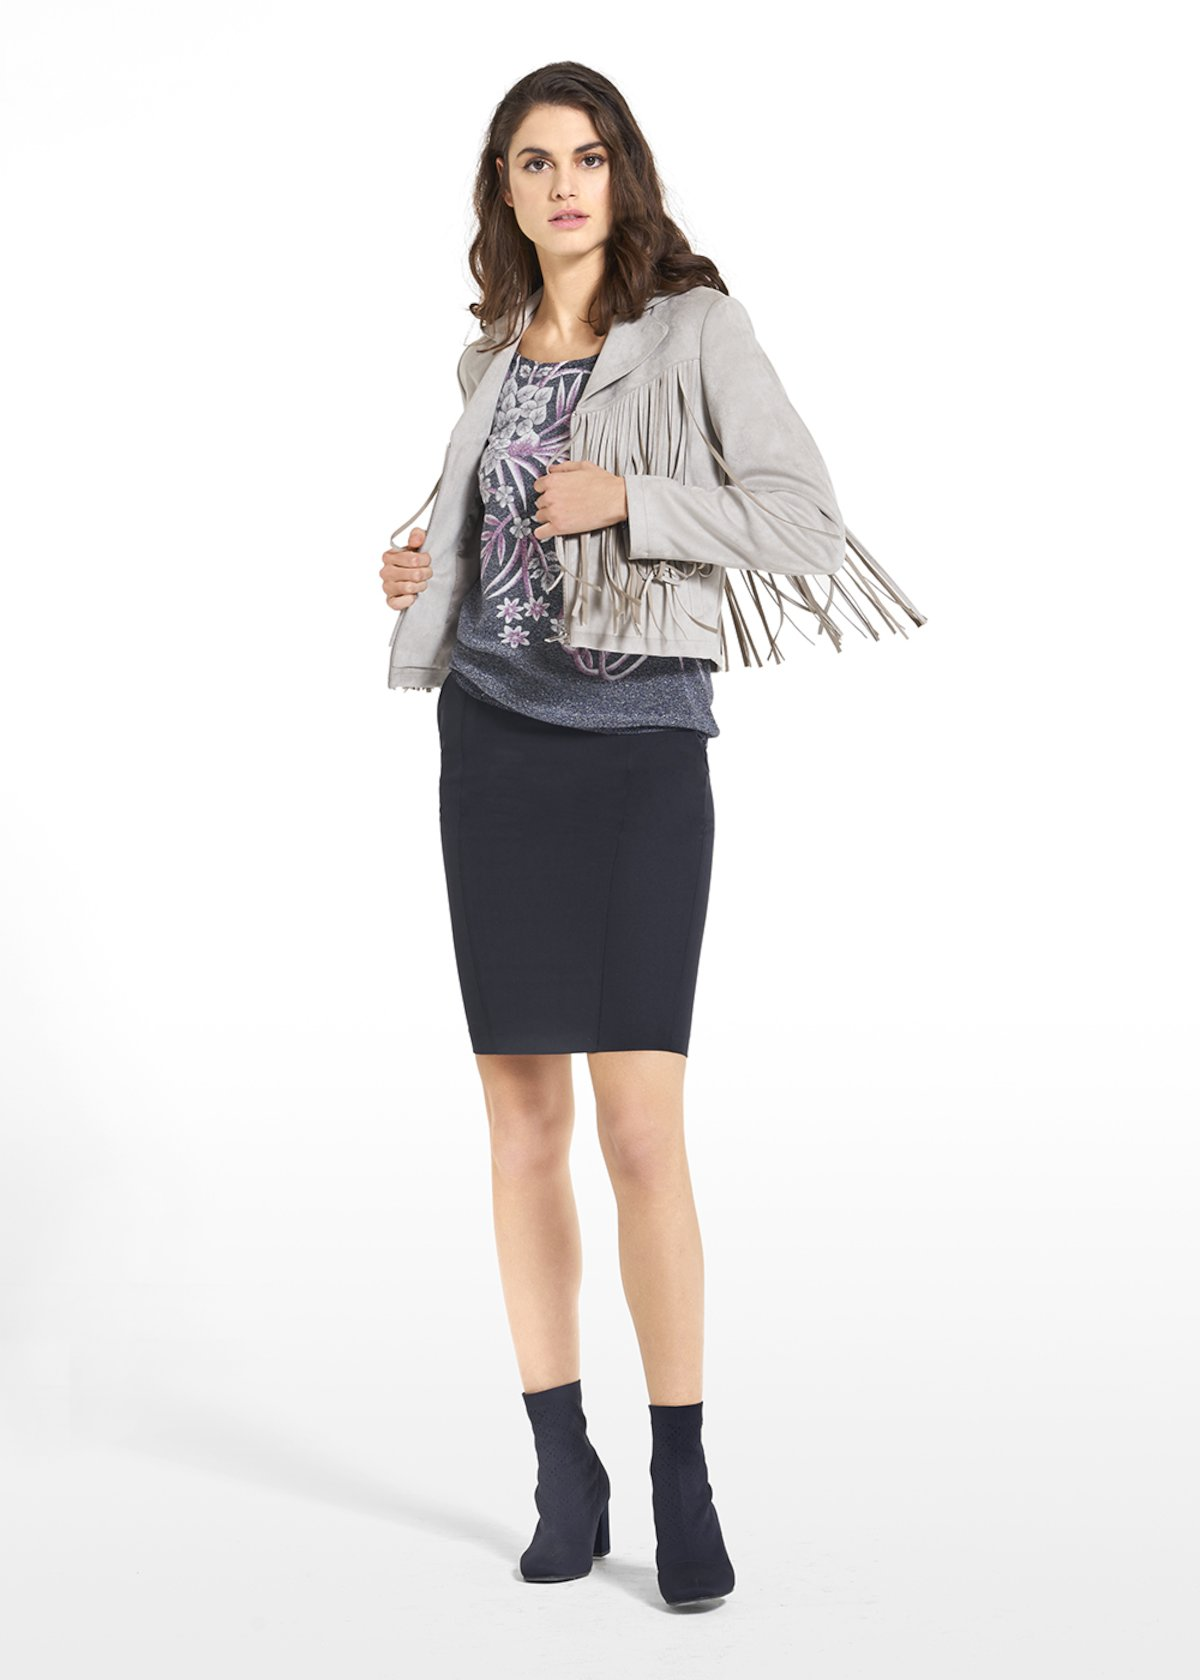 Eco-suede jacket Callie with fringes on the front and back - Grey-Blue - Woman - Category image